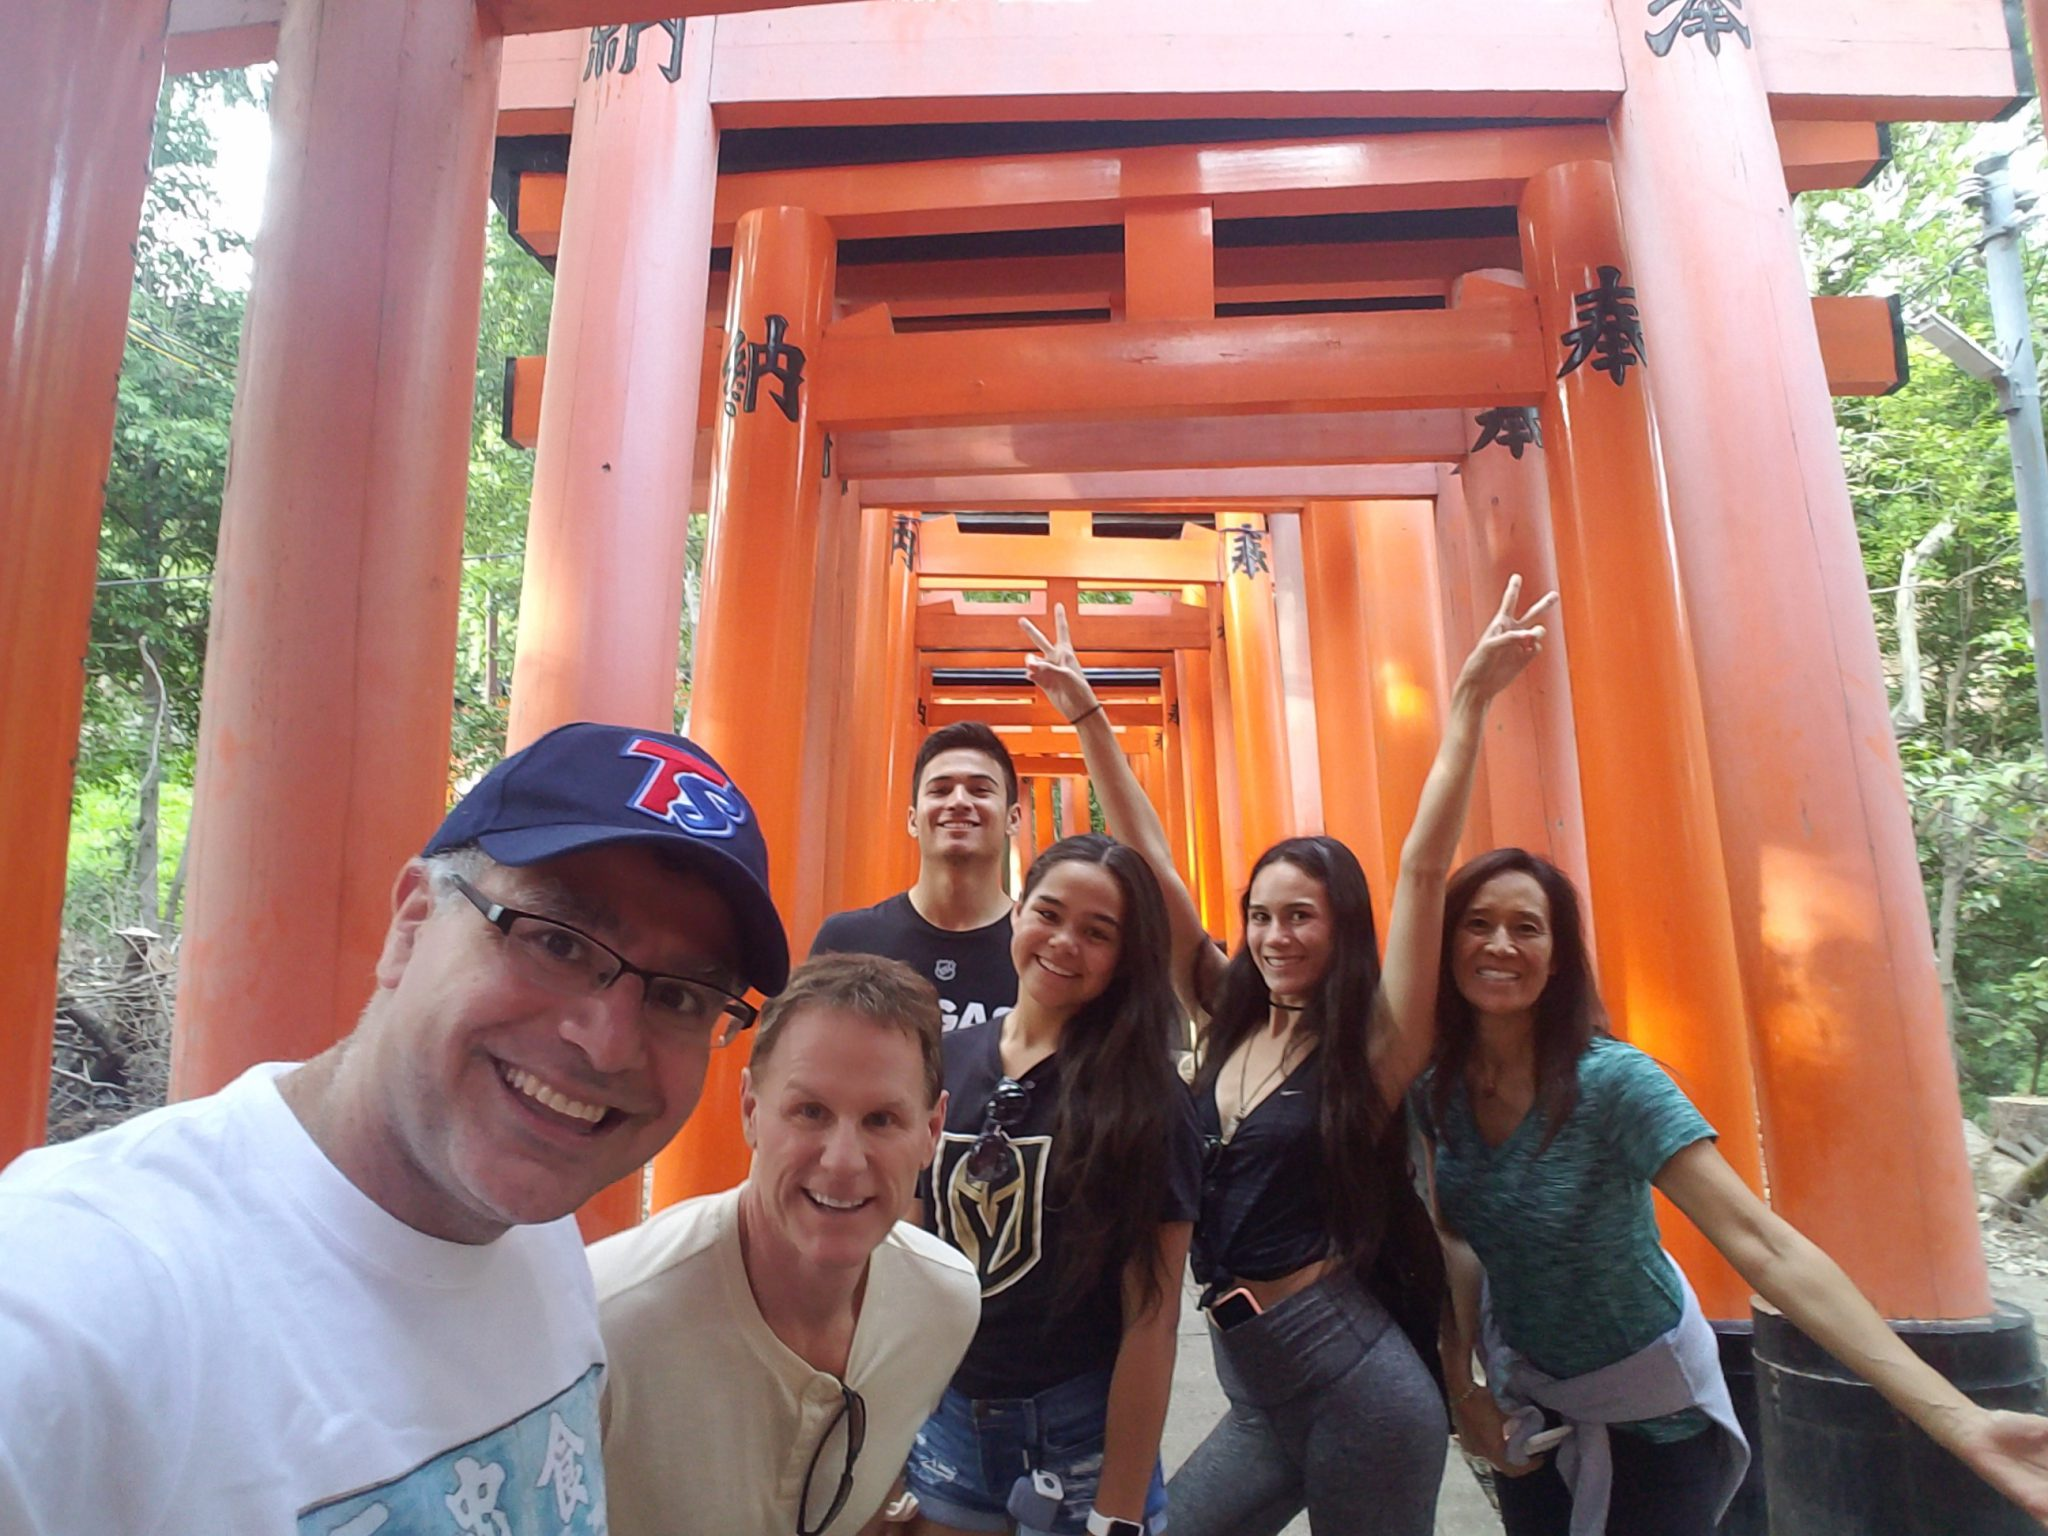 LA(M) Train: The Bradford Family and Mac of Maction Planet at Fushimi Inari Shrine in Kyoto